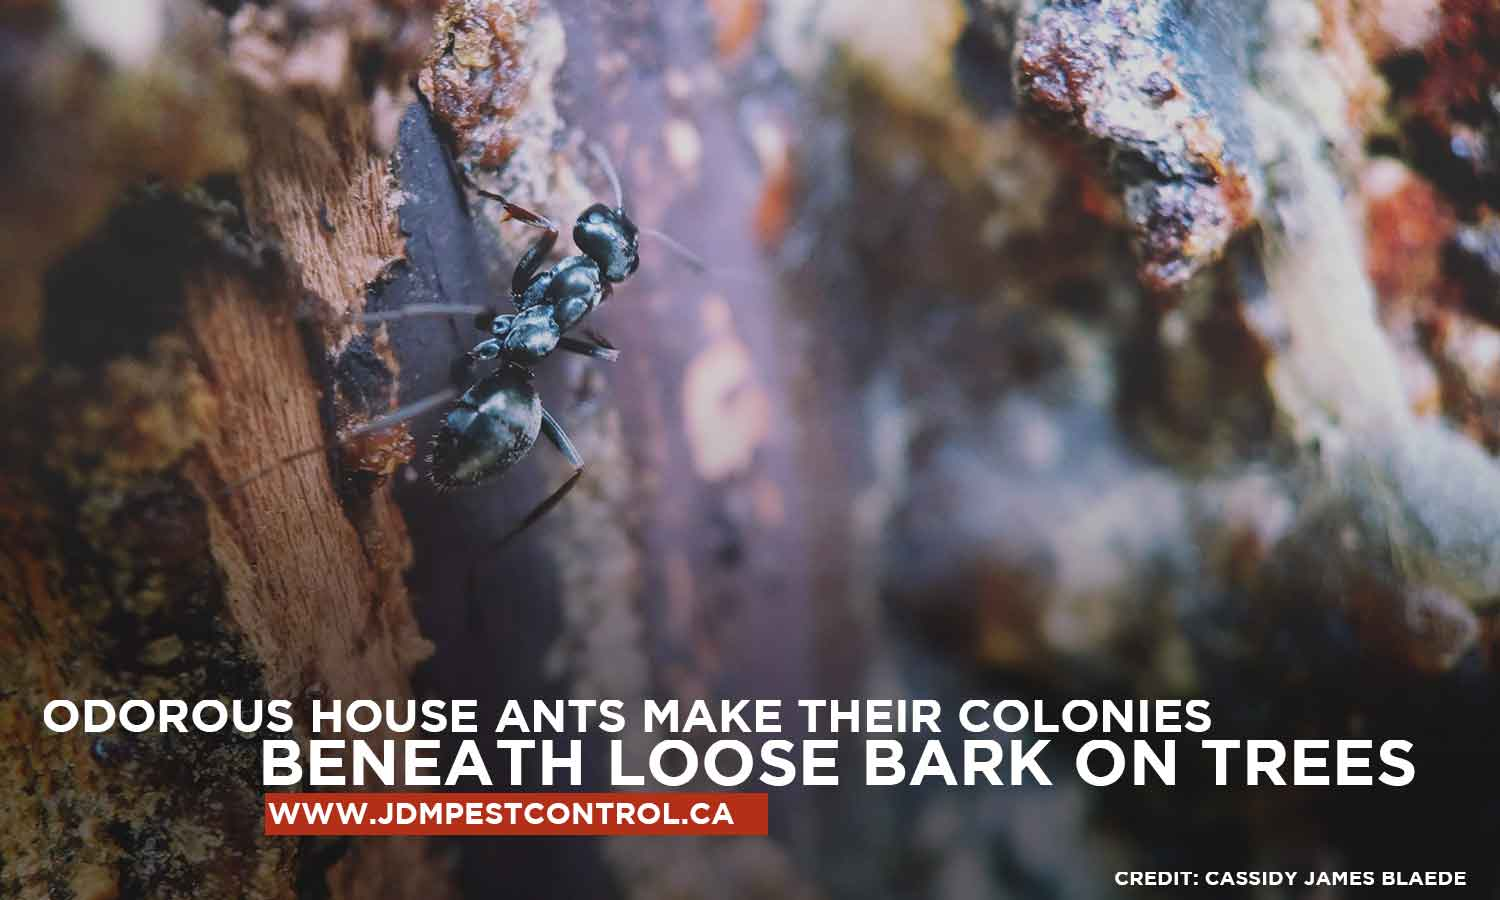 Odorous house ants make their colonies beneath loose bark on trees